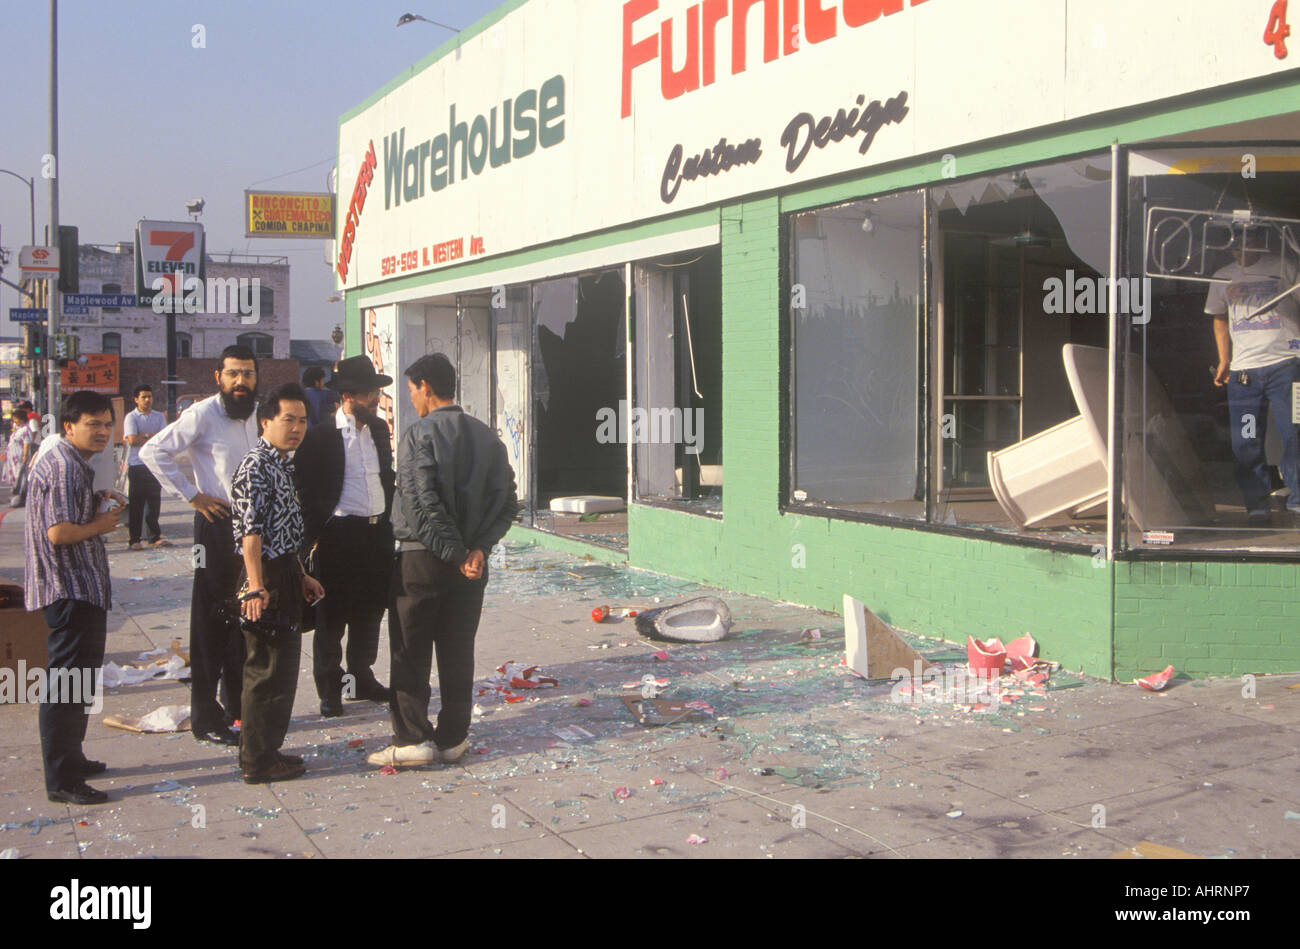 Ethnic Men Observing Furniture Store Looted During 1992 Riots South Central  Los Angeles California